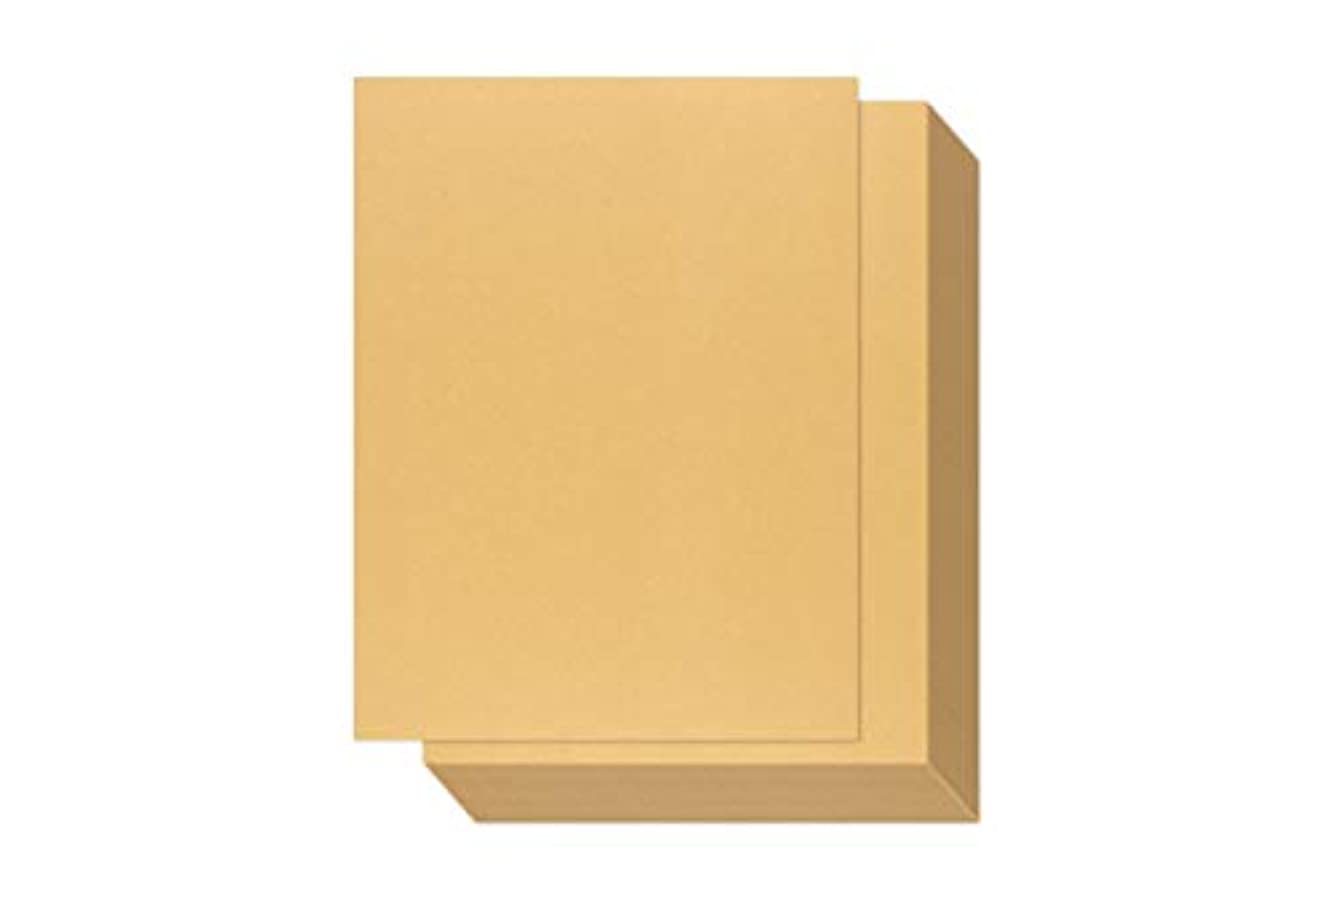 Gold Shimmer Paper - 100-Pack Metallic Cardstock Paper, Double Sided, Printer Friendly - Perfect for Weddings, Birthdays, Craft Use, Letter Size Sheets, 8.5 x 11 Inches